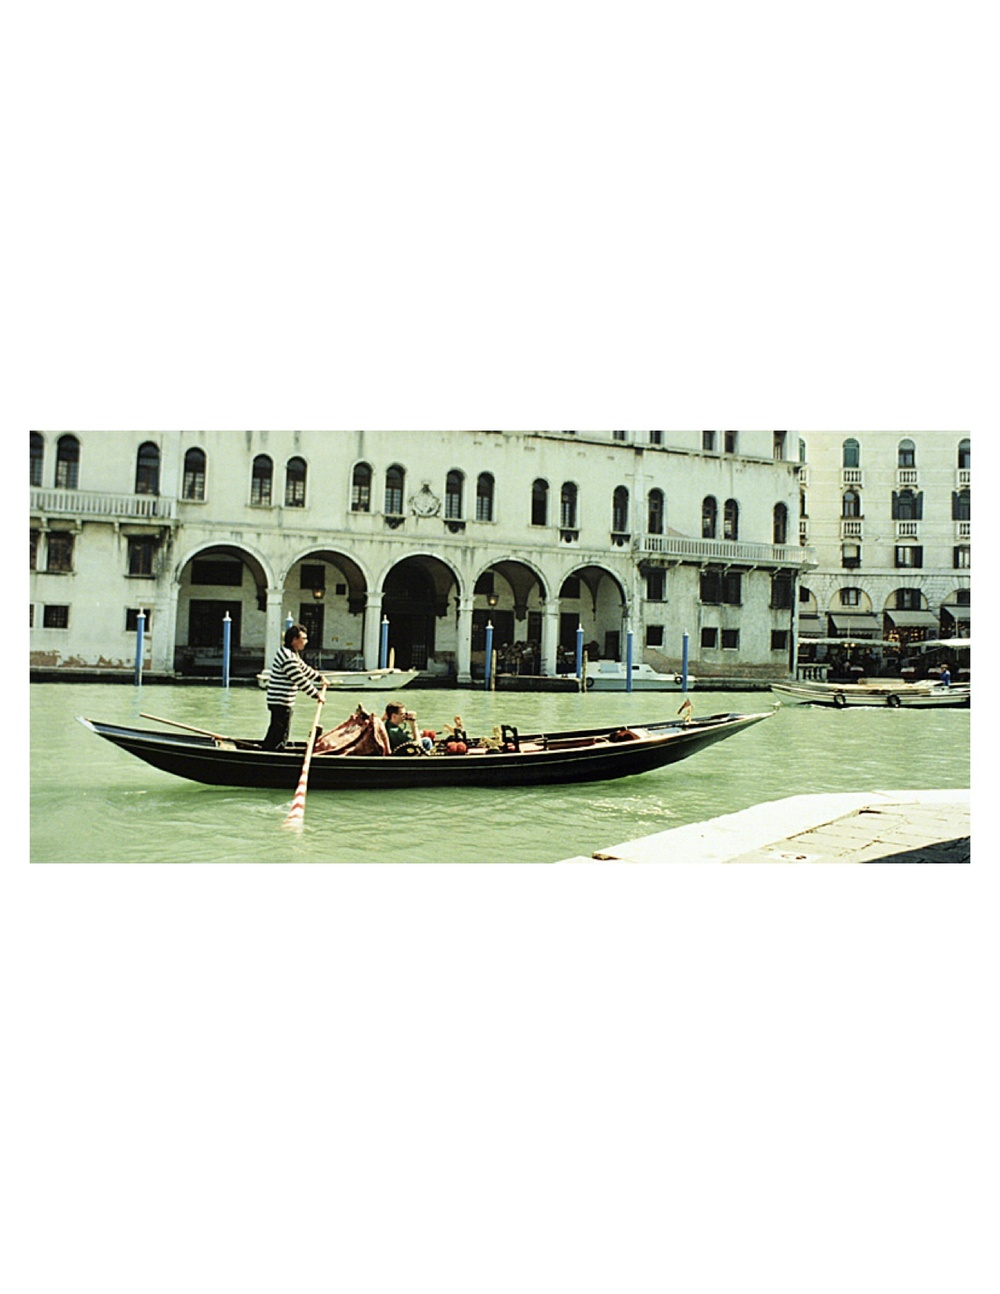 A sandolo (another style of Venetian boat) cruising toward the Rialto Bridge in Venice 2004. Photo by John Synco